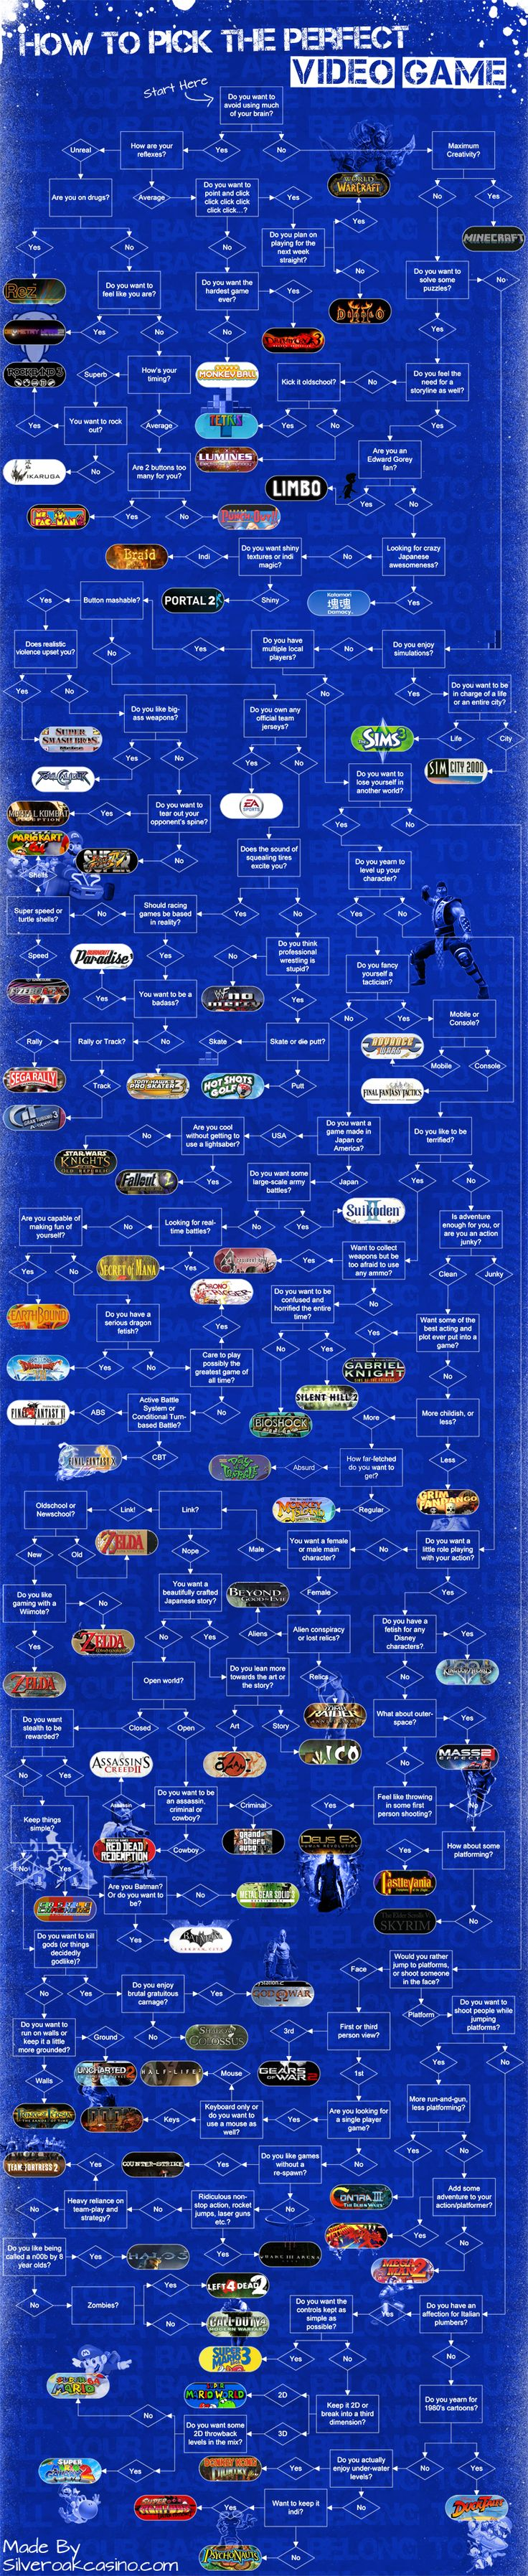 The Ridiculously Long Flowchart to Help You Choose a Video Game